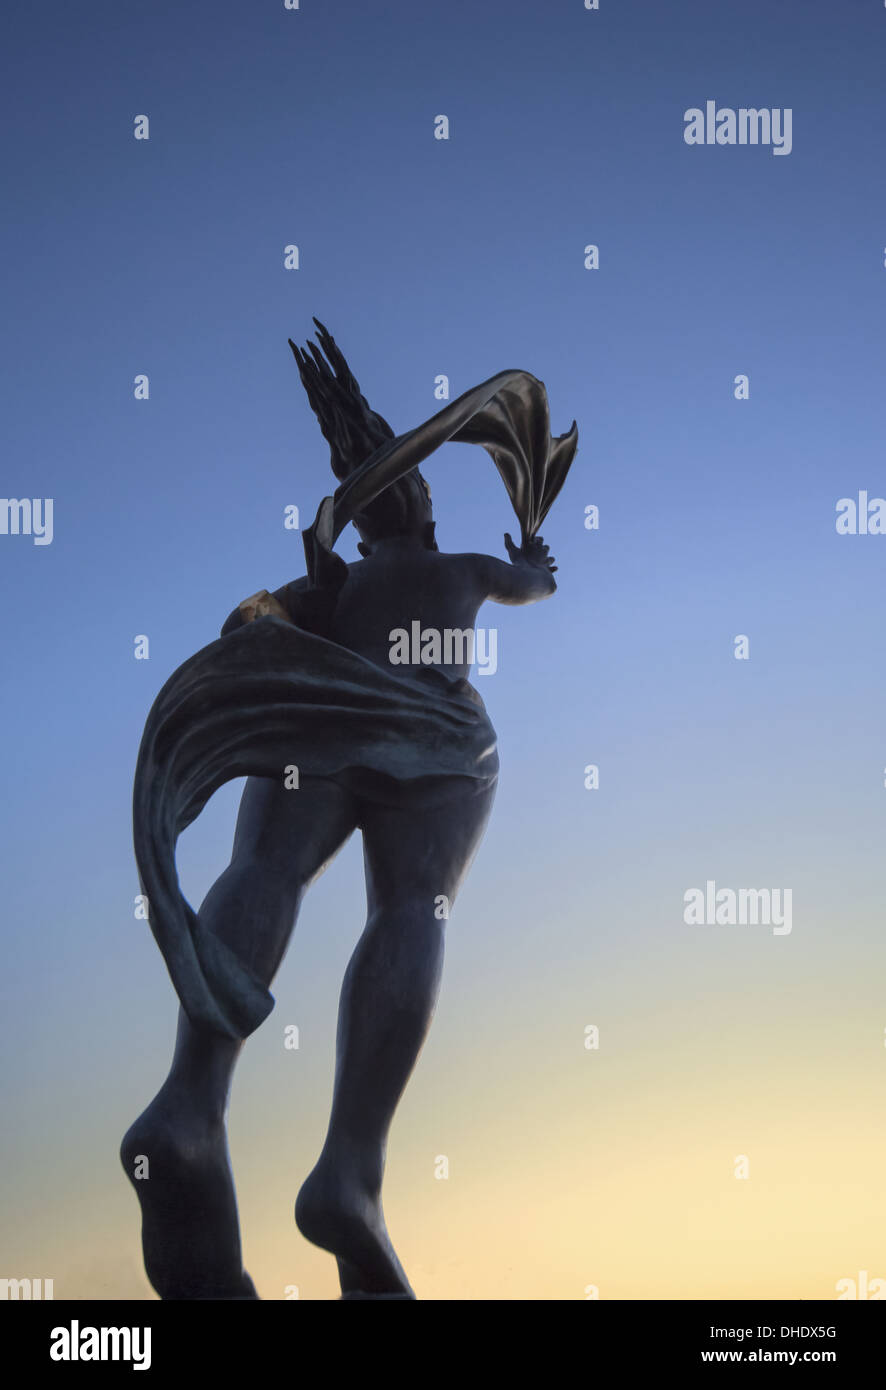 Low Angle View Of The Spirit Of South Shields Statue At Sunset; South Shields, Tyne And Wear, England Stock Photo